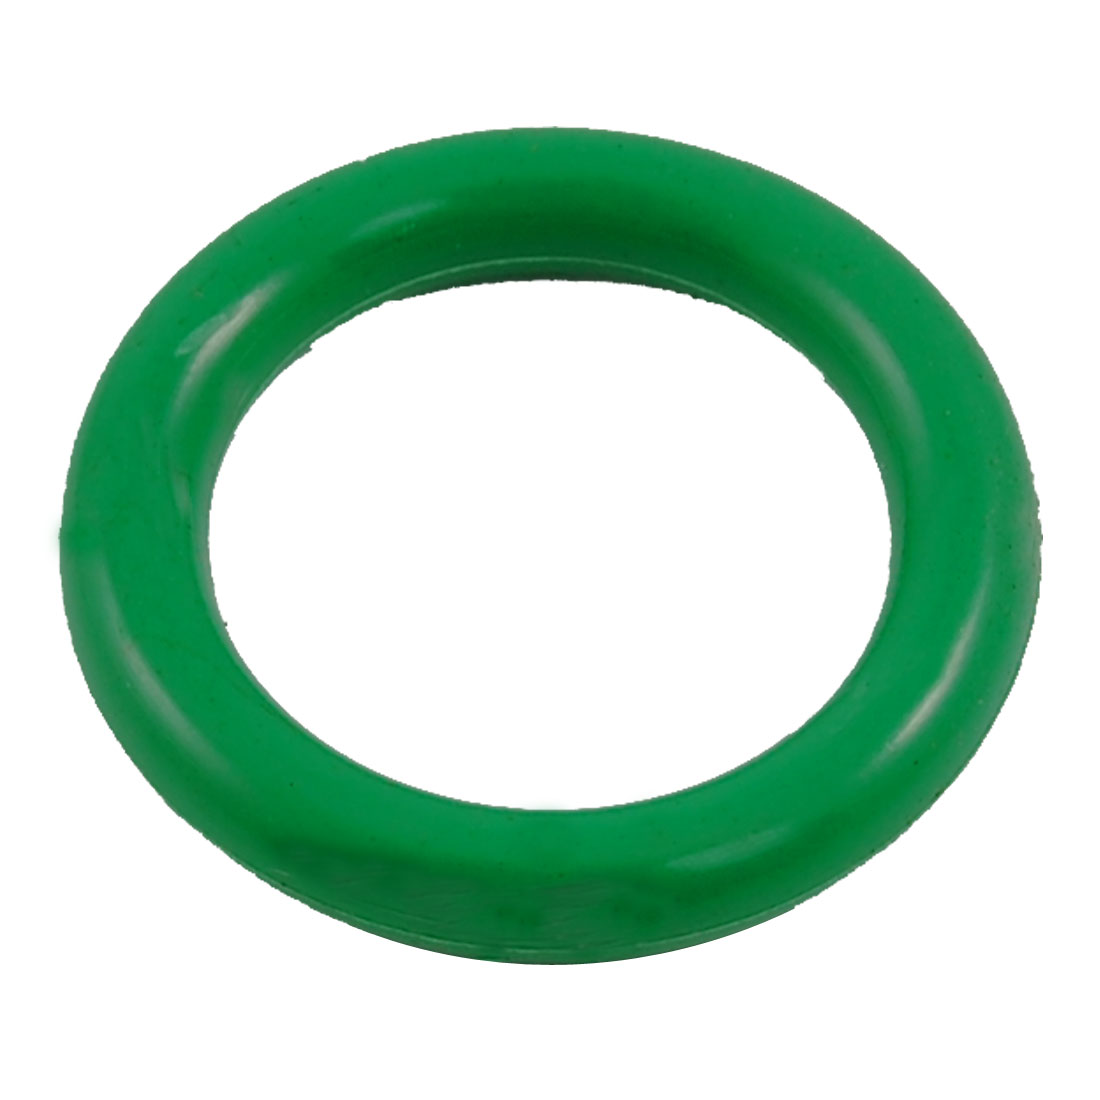 Mechanical Fluorine Rubber O Ring Seal Gasket Washer 21mm x 3mm